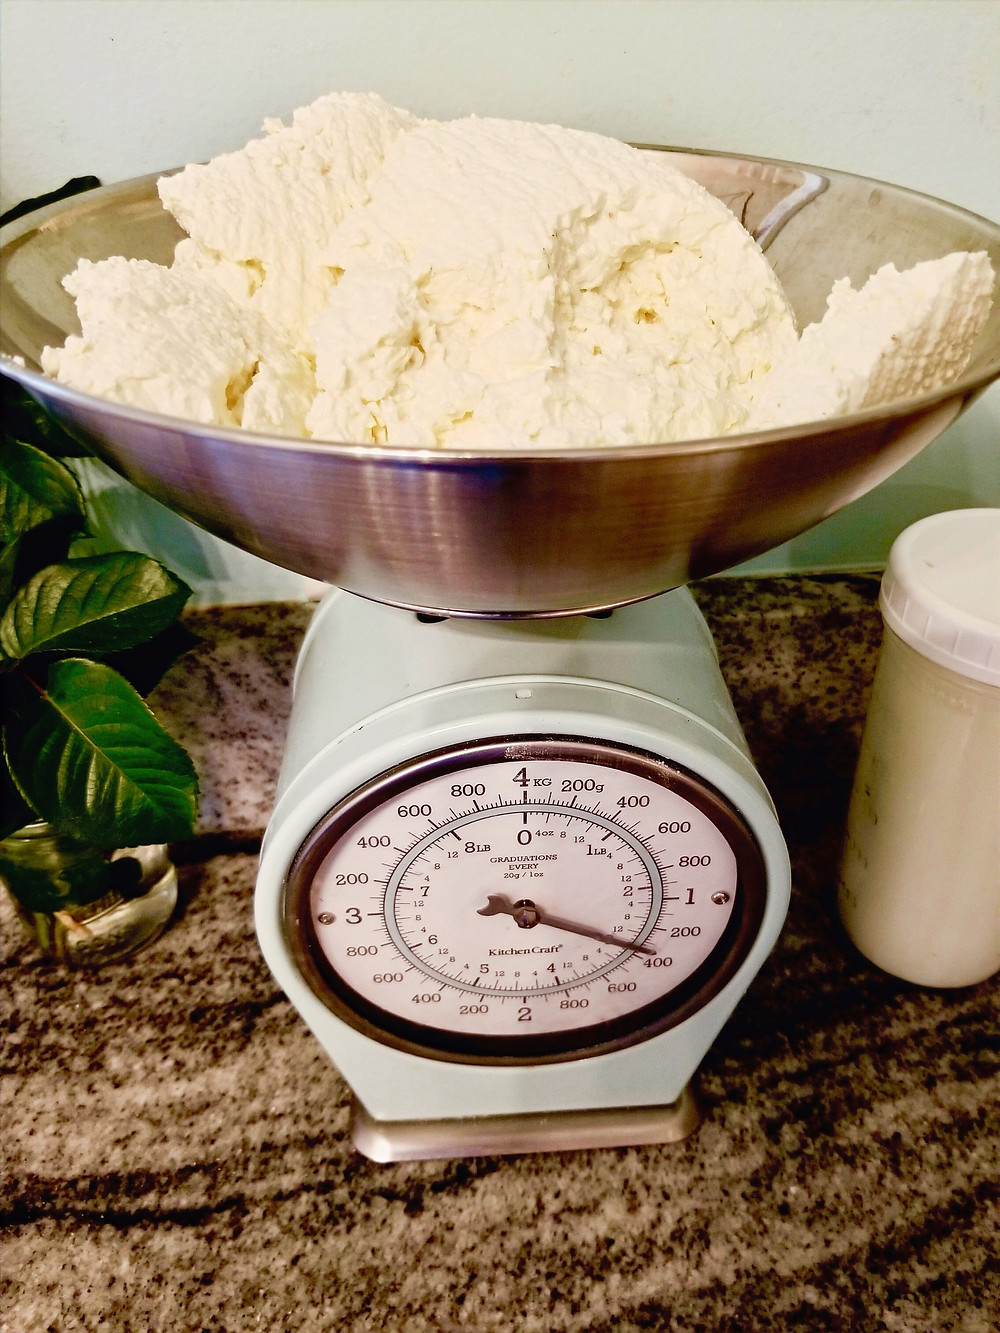 Homemade farmer's cheese on a kitchen scale